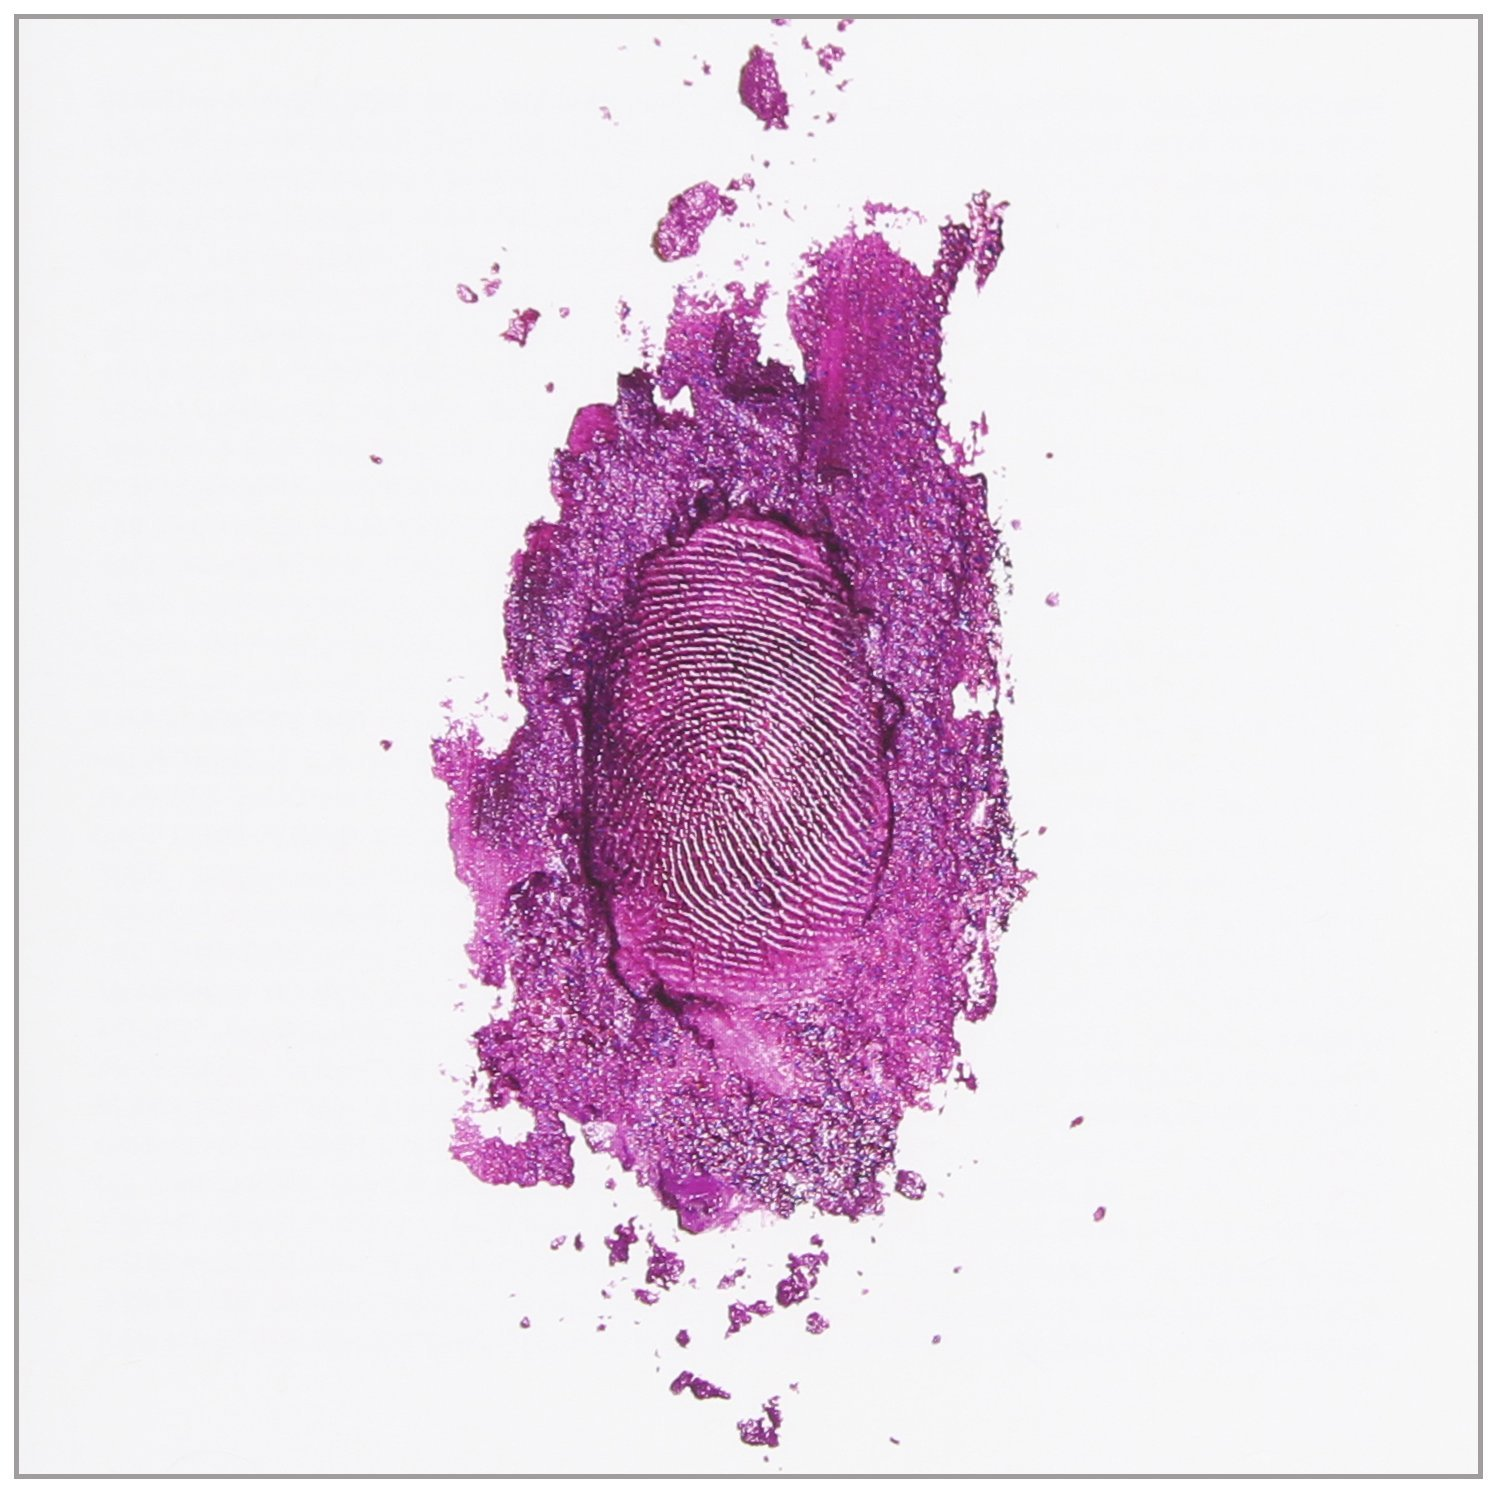 NICKI MINAJ - PINKPRINT (DELUXE) (CD)